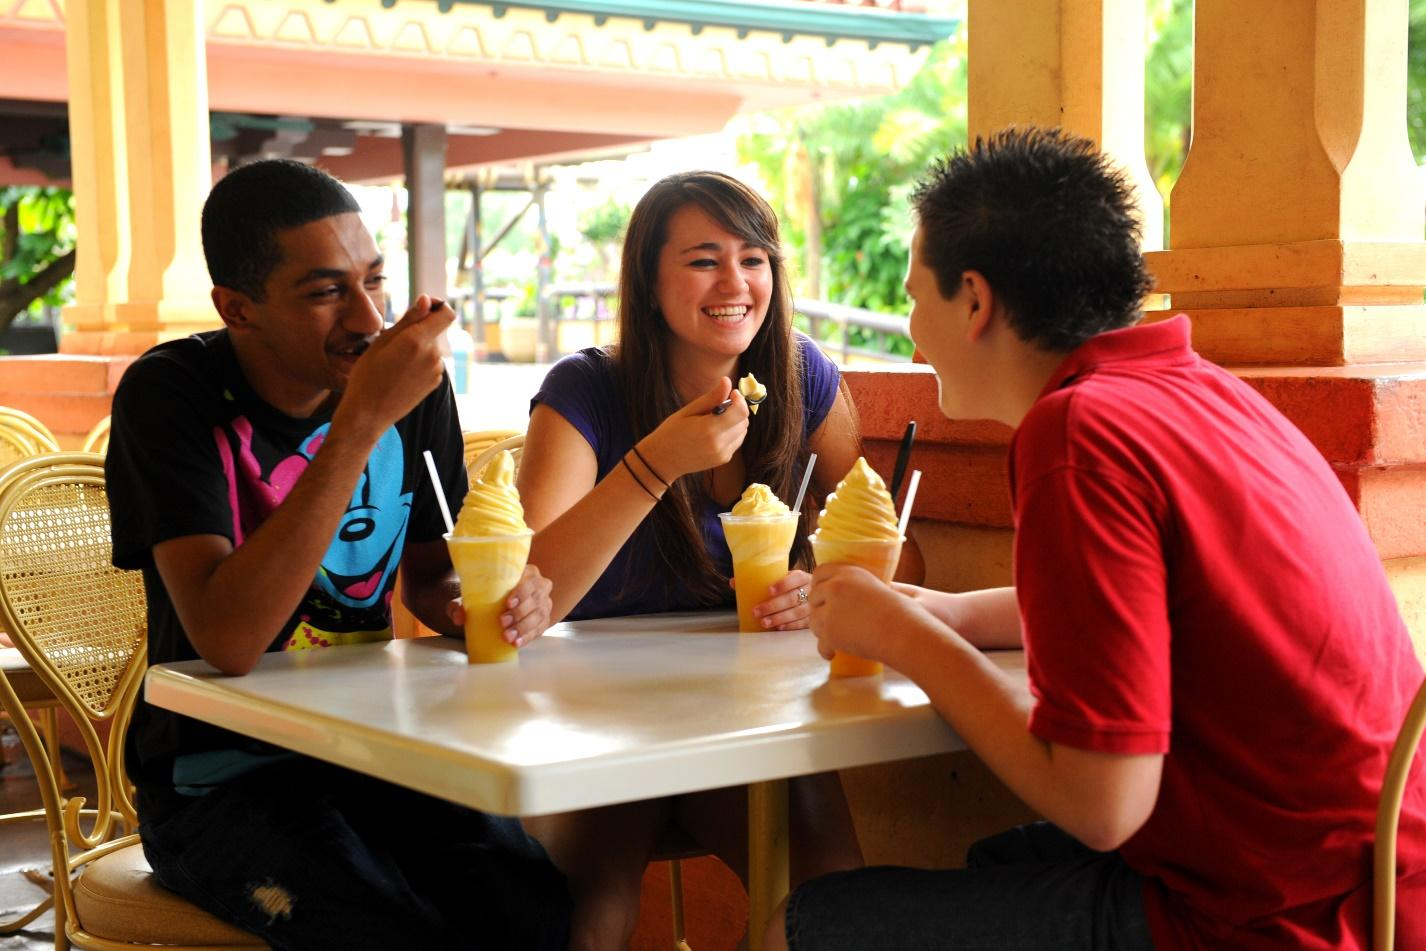 Two guys and a gal eat some ice cream together and laugh at Disney.